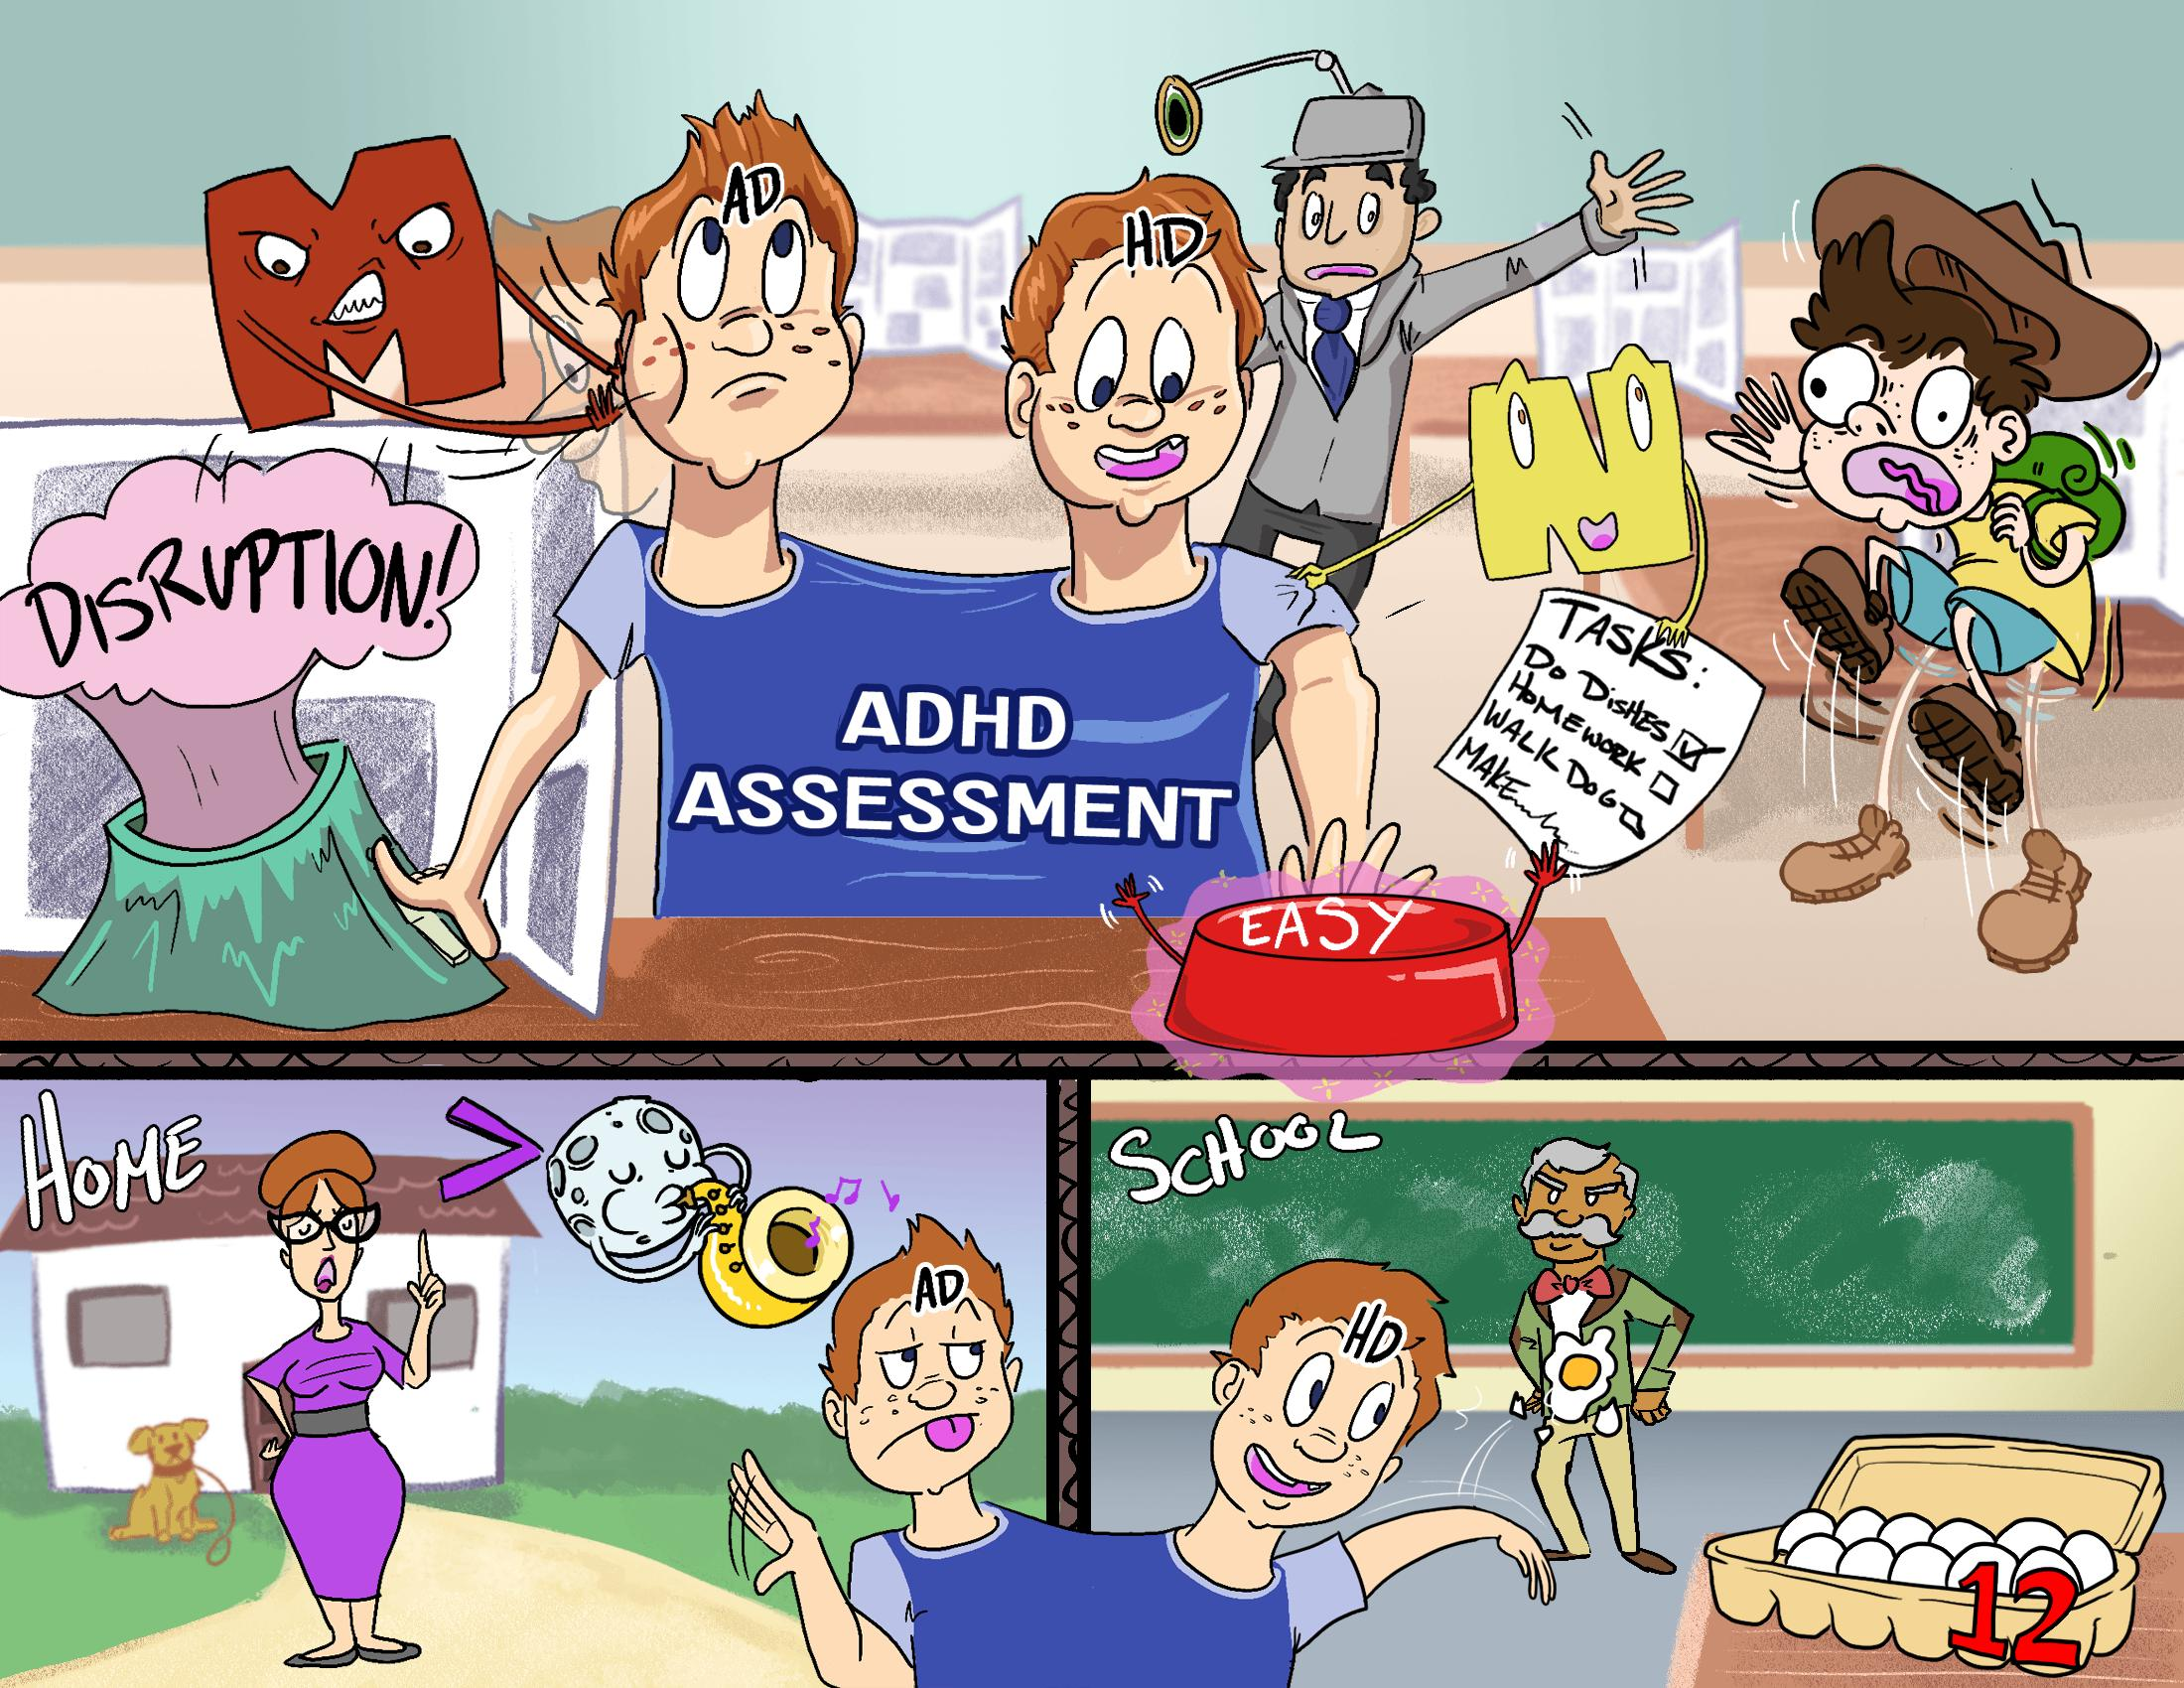 Attention-Deficit Hyperactivity Disorder (ADHD) Assessment